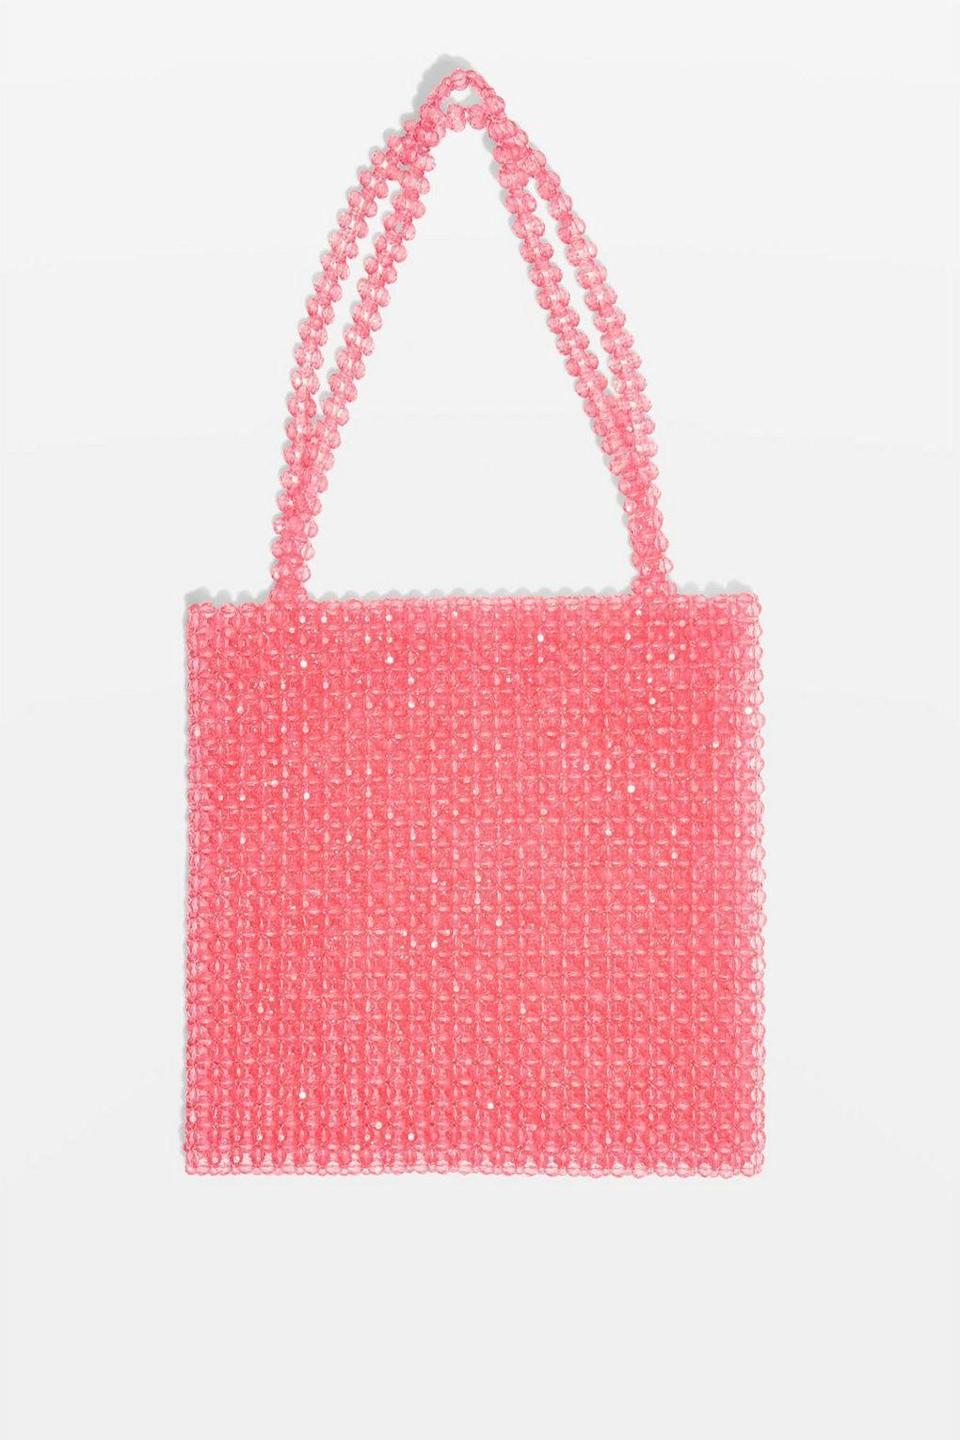 """<p>Bead bags are all the rage at the moment, thanks to Shrimps' now-cult Antonia bag. The great thing about this Topshop version is that it won't set you back £450 like the original. Win. <em><a rel=""""nofollow noopener"""" href=""""http://www.topshop.com/en/tsuk/product/beaded-tote-bag-7638821?geoip=noredirect&cmpid=ppc_pla_UK_ip&utm_medium=cpc&tsrc=vdna&istCompanyId=38aa0d7f-6514-4cb3-bbdc-df0d32d48b7f&istItemId=-xlxmwiriti&istBid=tztx&utm_content=&gclid=EAIaIQobChMI-_rlva7i2gIVDp3tCh27UwLZEAQYASABEgJsGfD_BwE&gclsrc=aw.ds"""" target=""""_blank"""" data-ylk=""""slk:Buy here."""" class=""""link rapid-noclick-resp"""">Buy here.</a> </em> </p>"""